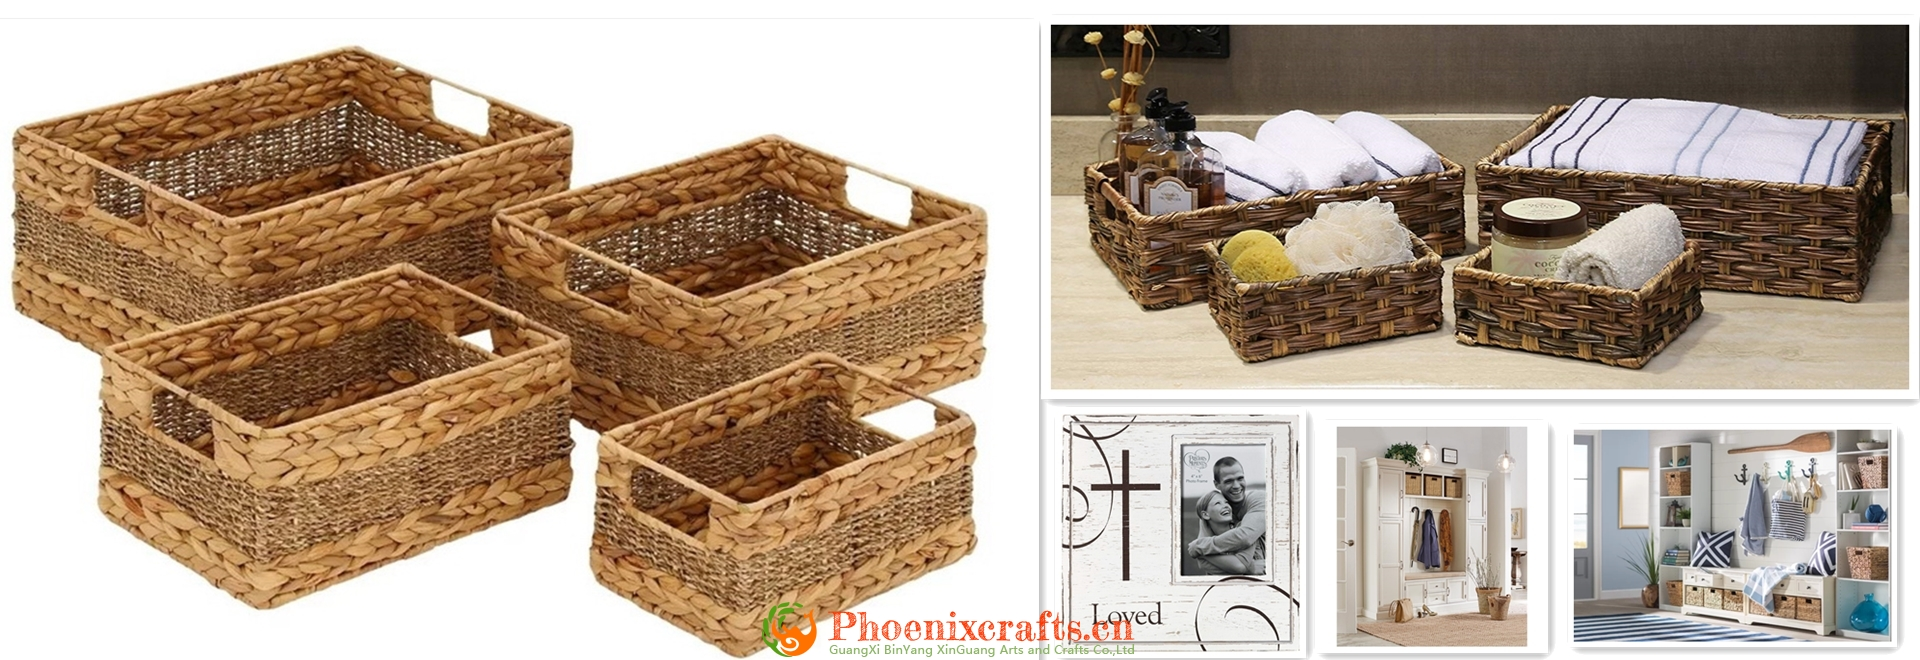 Home Office Baskets